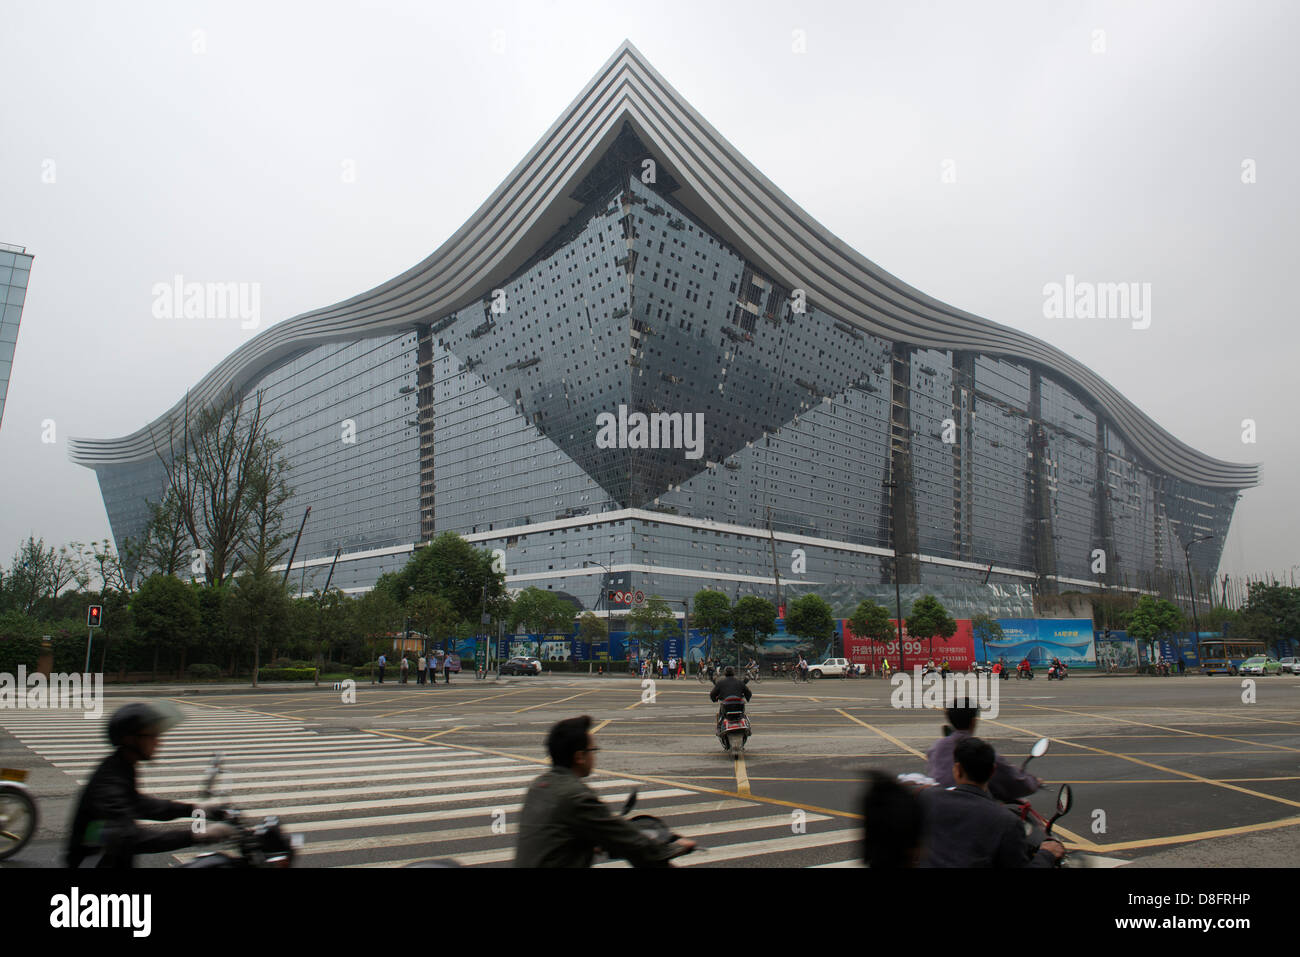 New Century Global Centre in Chengdu, the world's biggest standalone building. - Stock Image